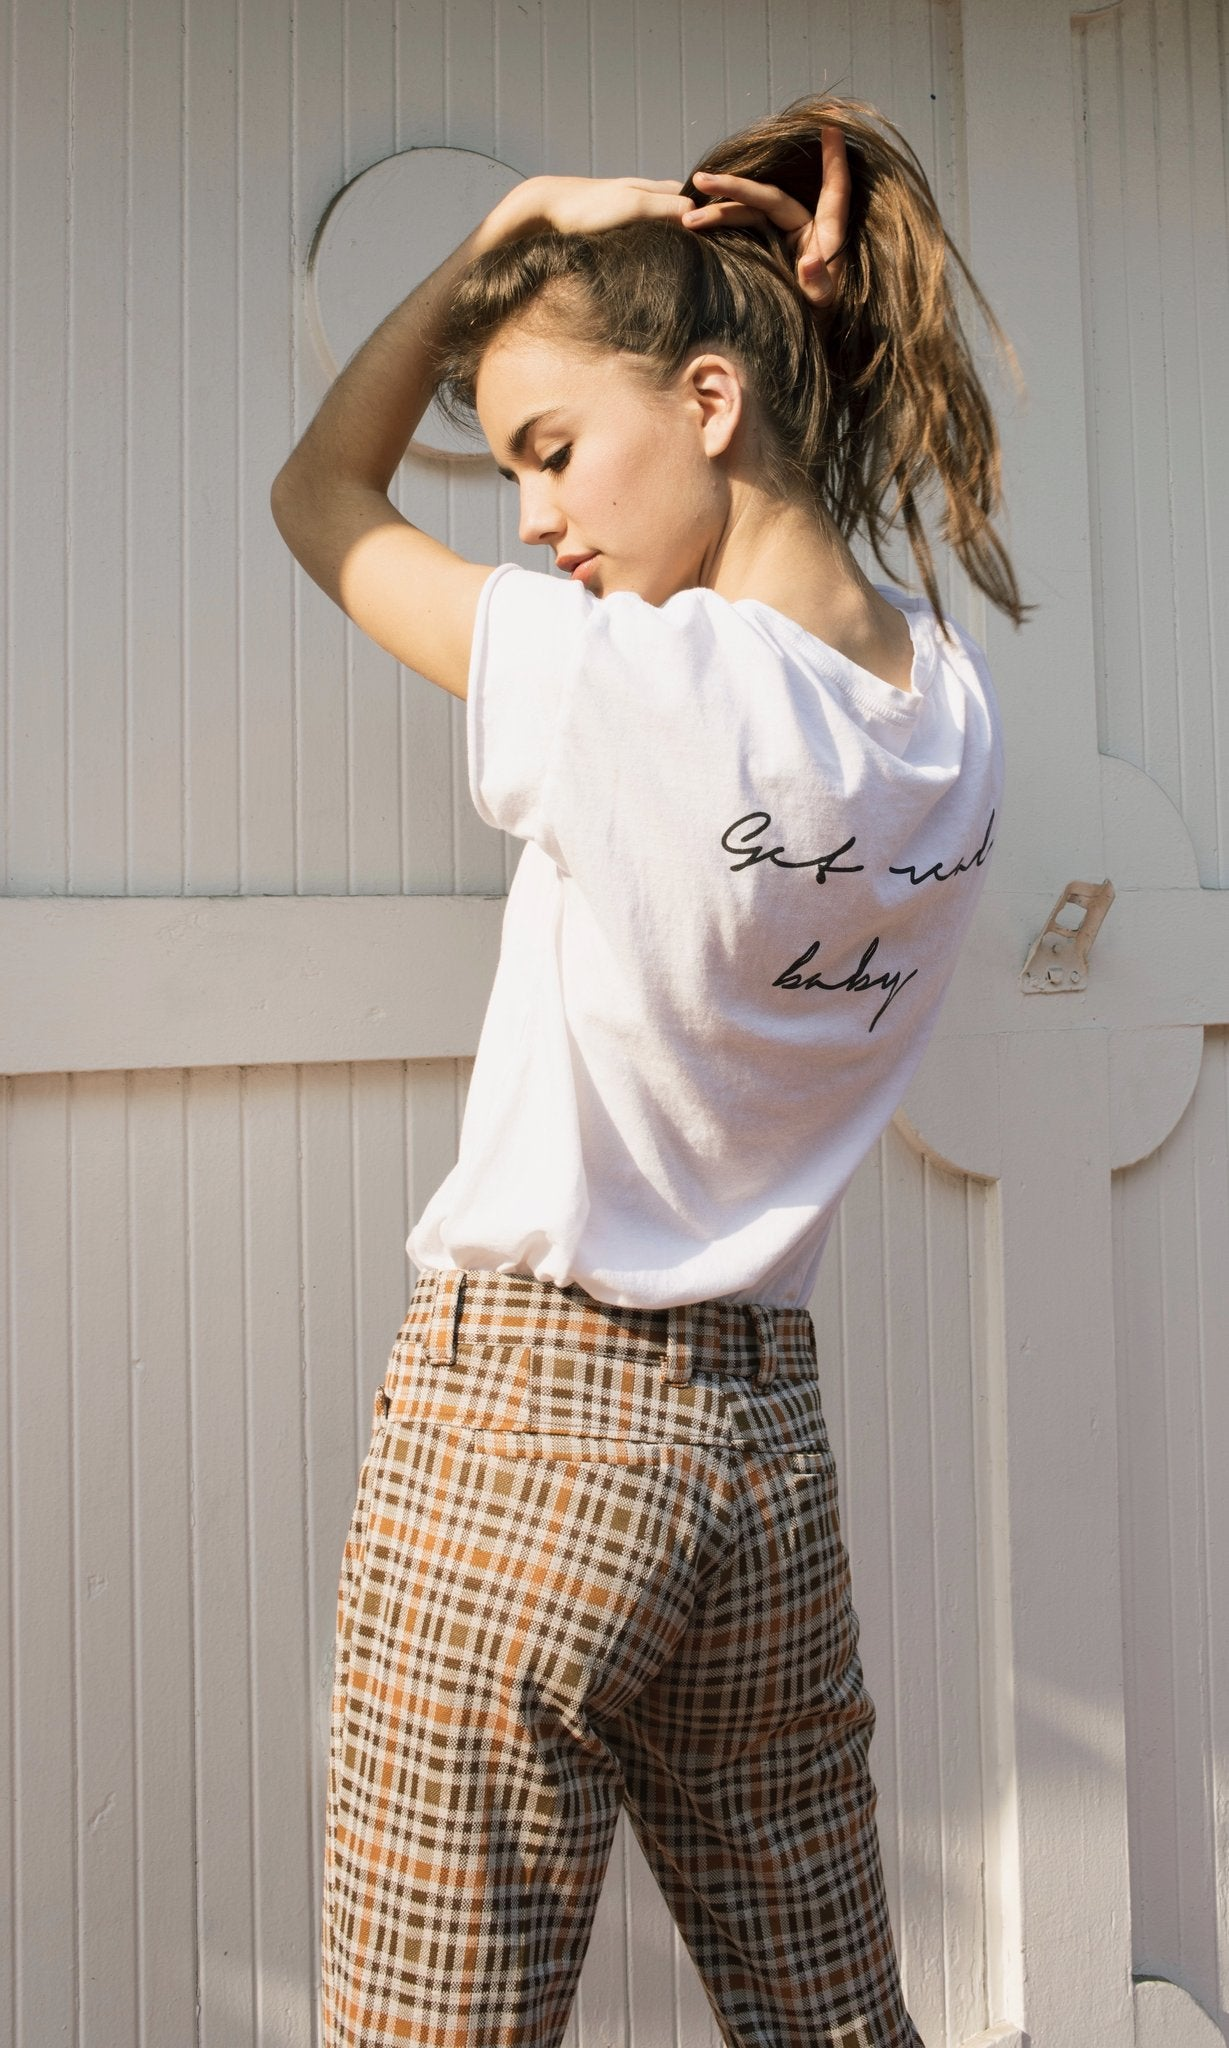 Get Real, Baby Graphic Tee - Hello Addie